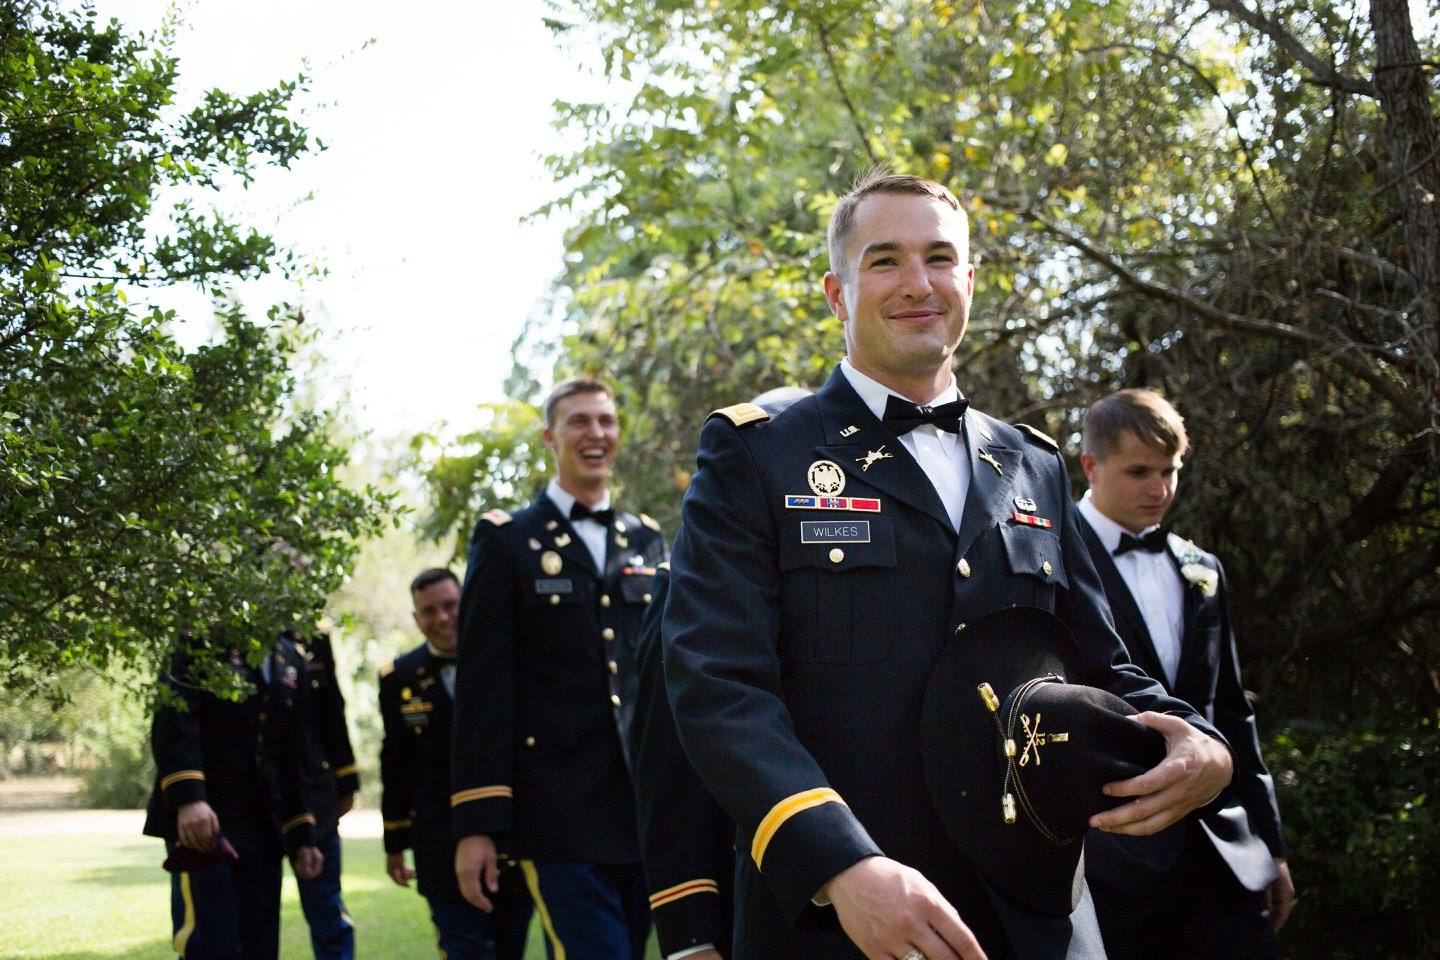 Red Corral Ranch Military Wedding